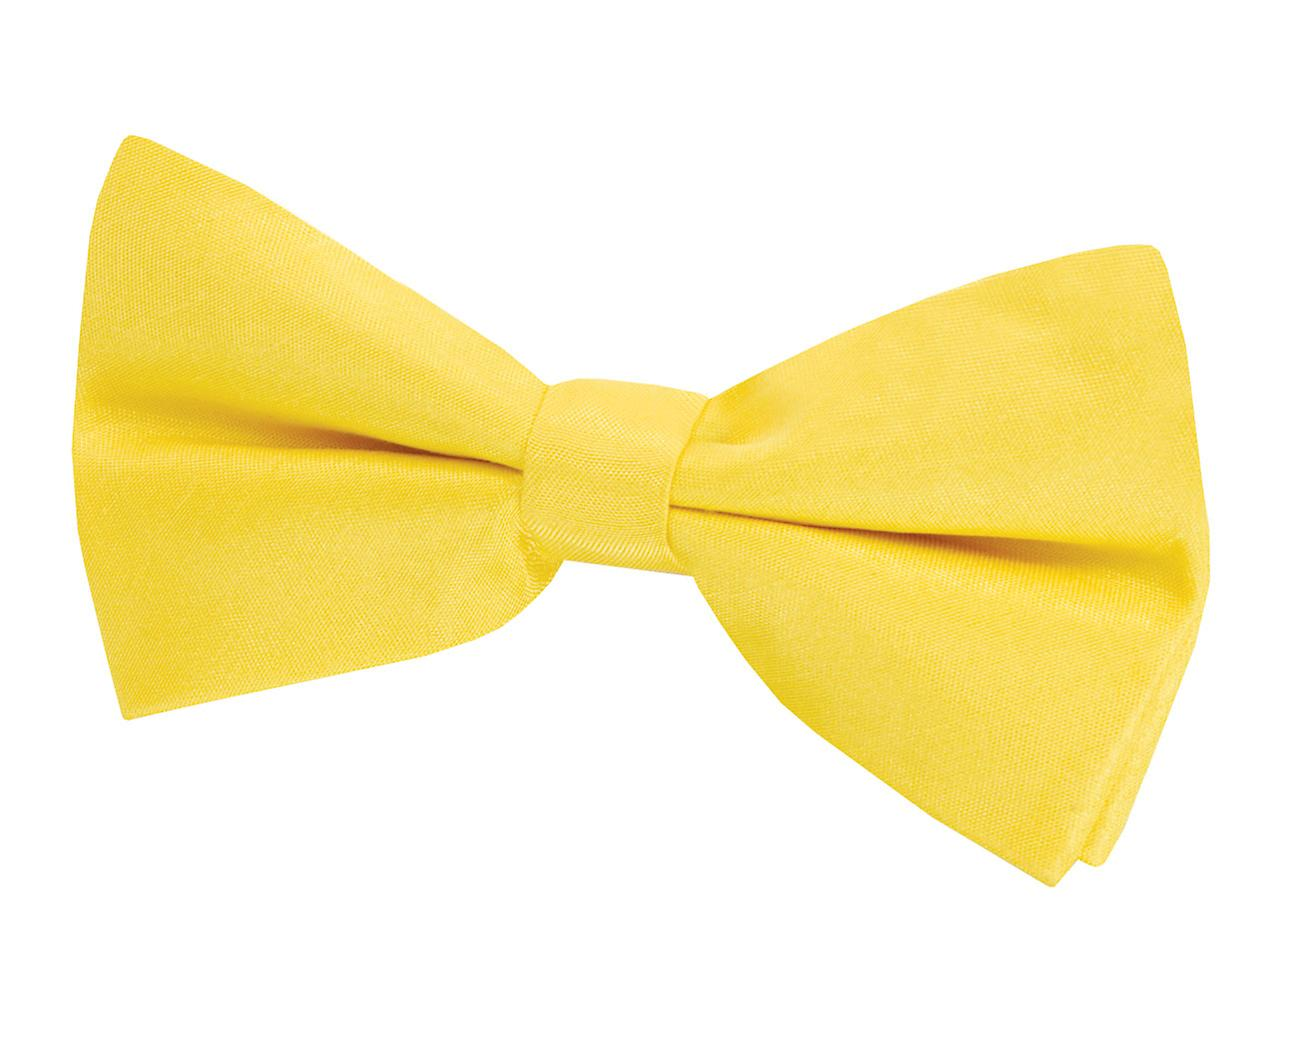 Dobell Mens Yellow Bow Tie Dupion Satin-Feel Pre-Tied